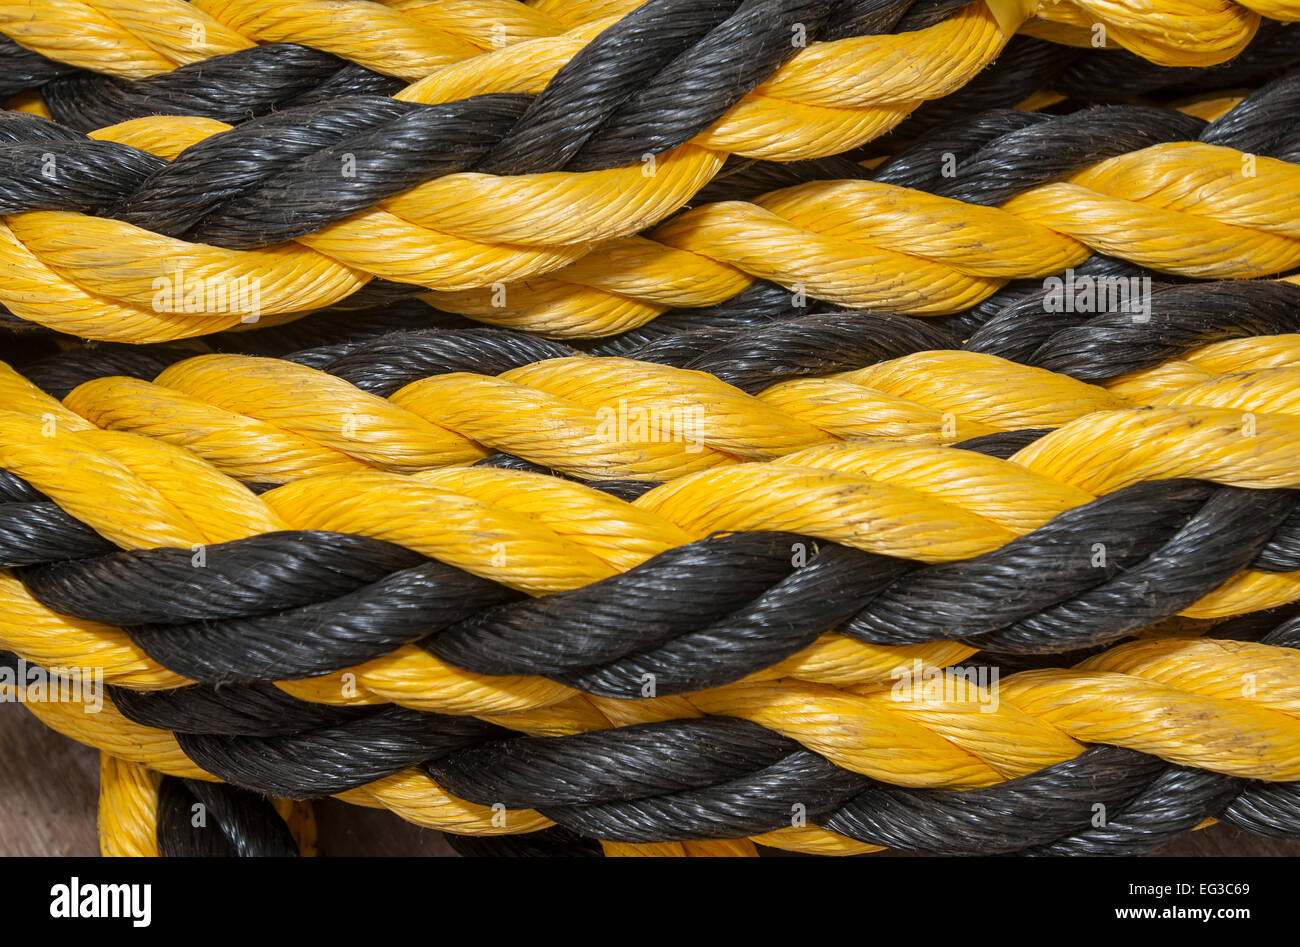 A tangle of nylon ropes black and yellow - Stock Image